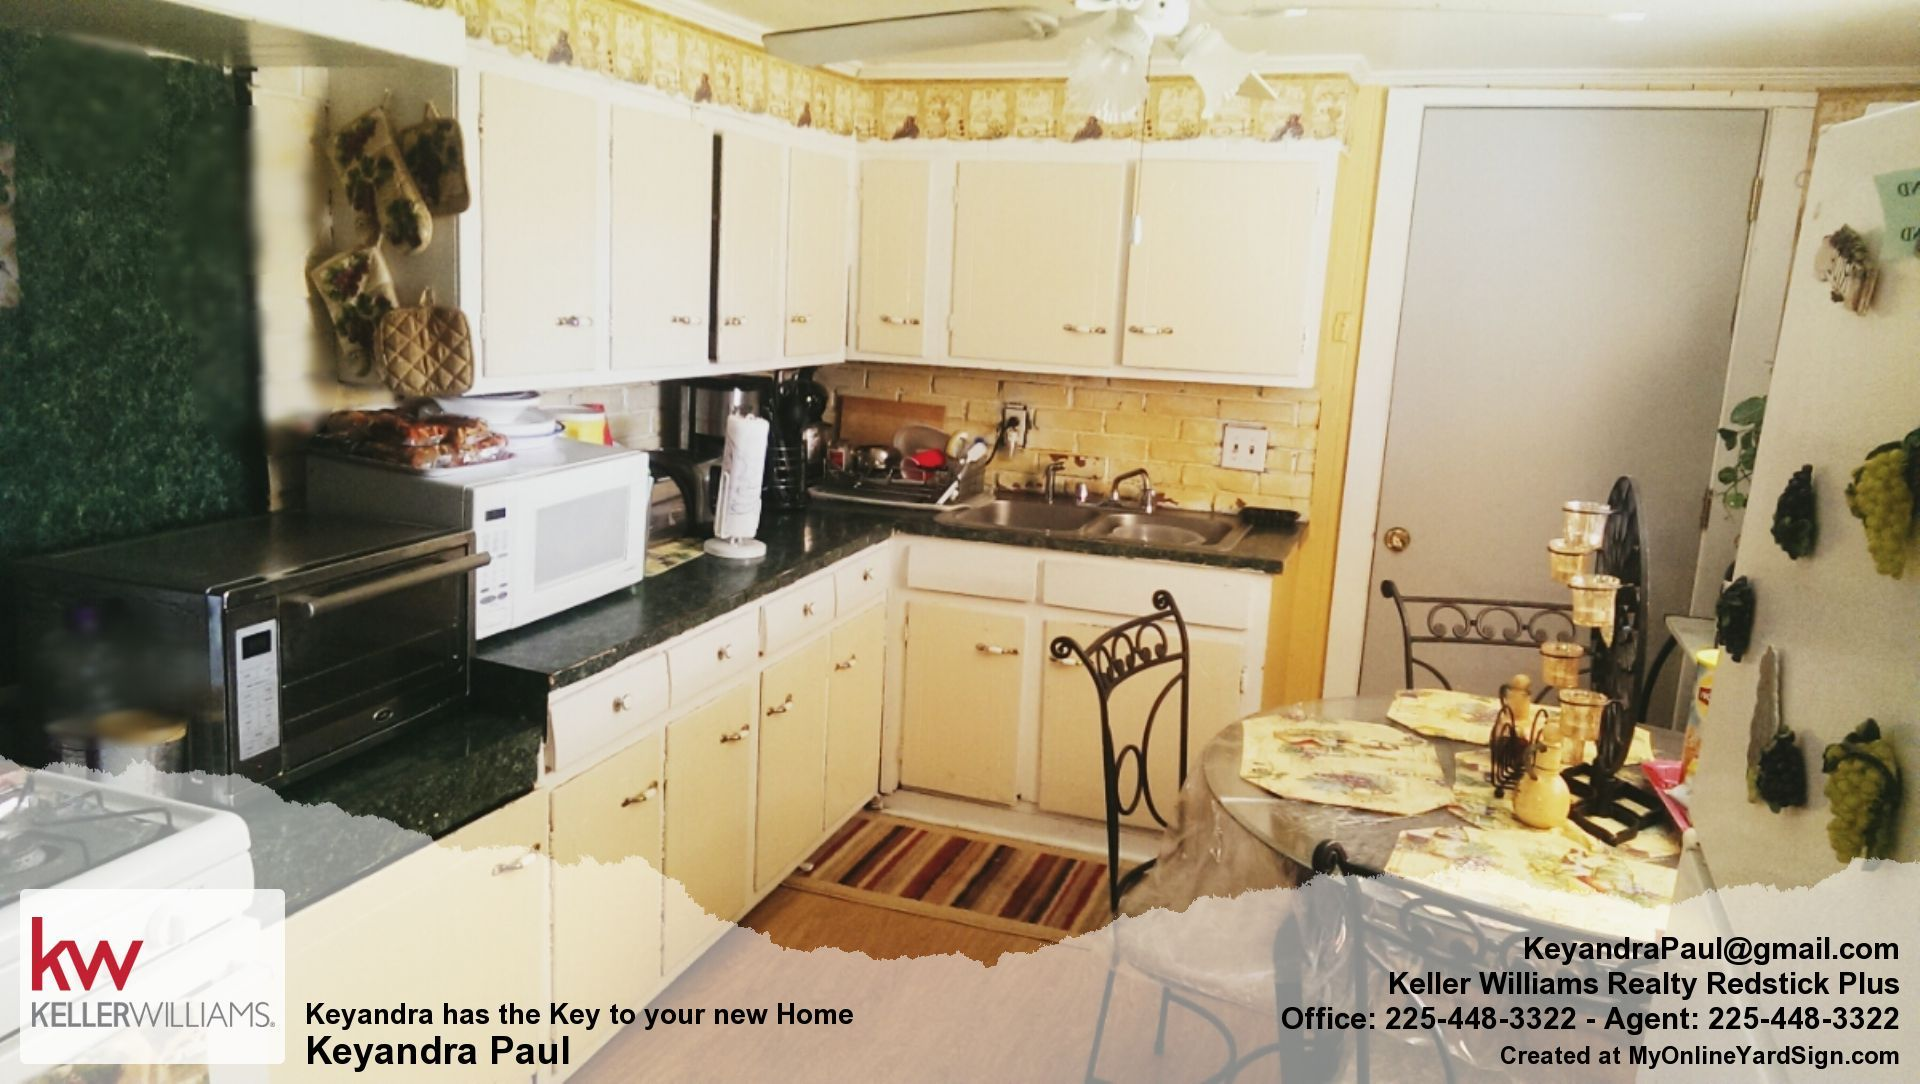 FOR SALE IN BATON ROUGE, LA Text Wayne Dr. to (225)221-0046 Http://Keyandrapaul@gmail.com